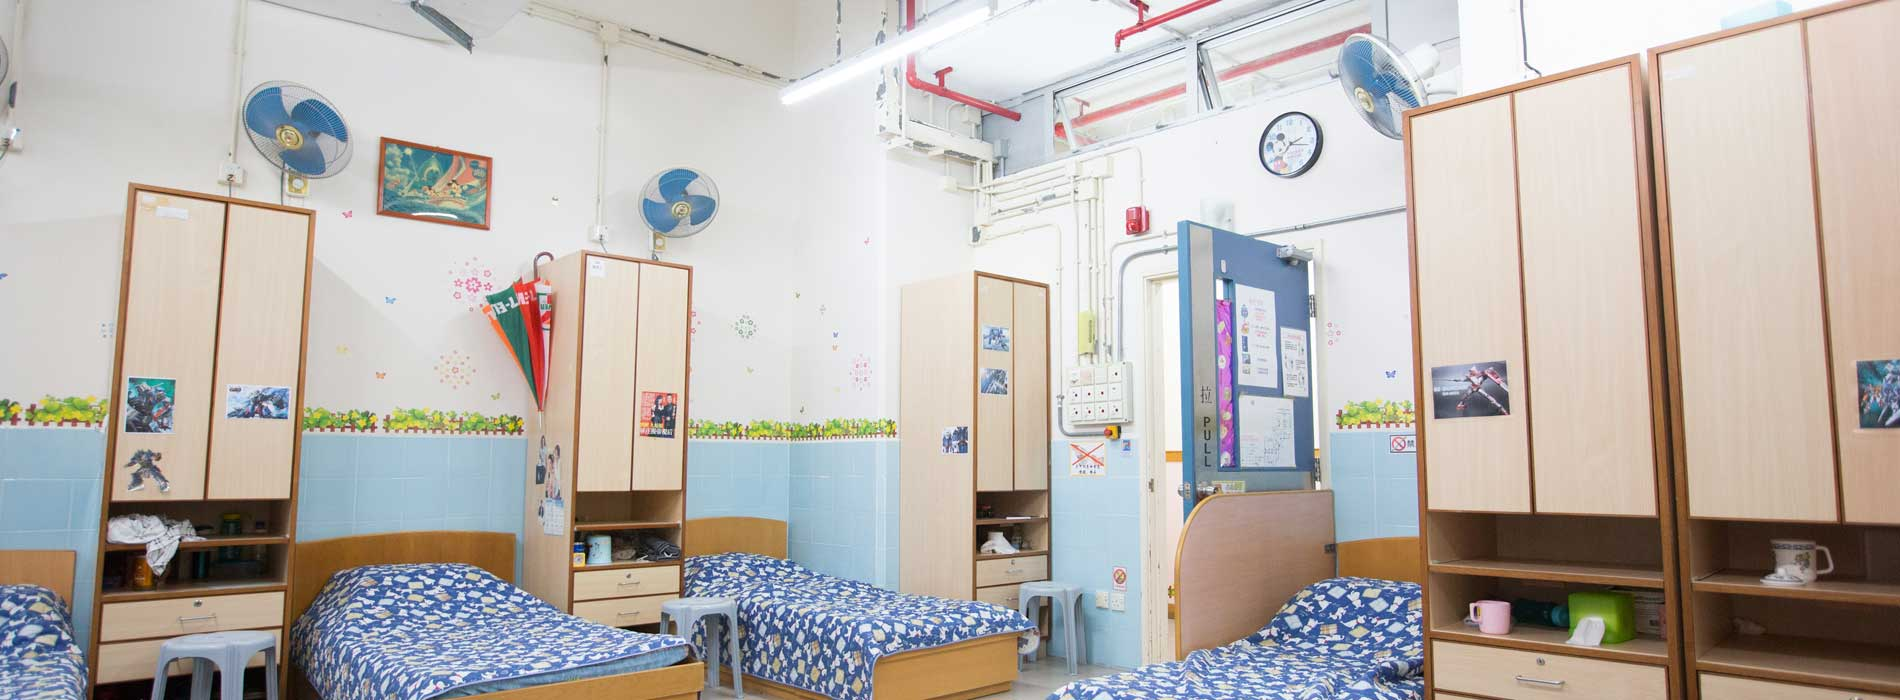 Home of Love - Yung Shing Hostel Download Banner